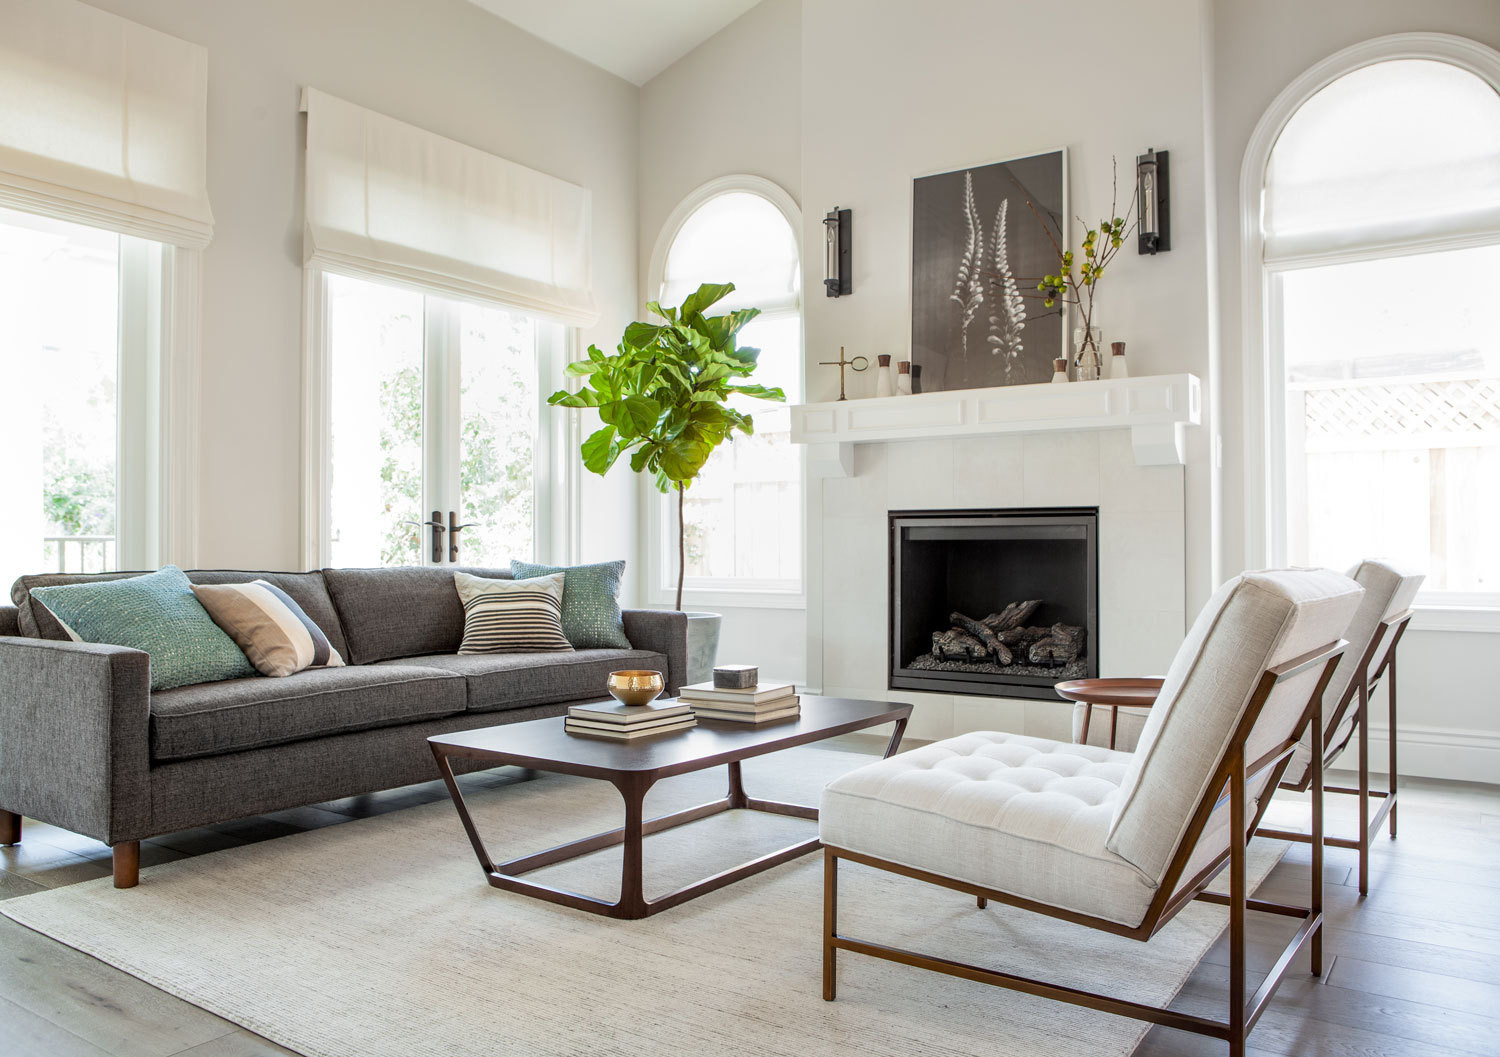 The living room that jennifer jones designed in palo alto california features sustainably minded